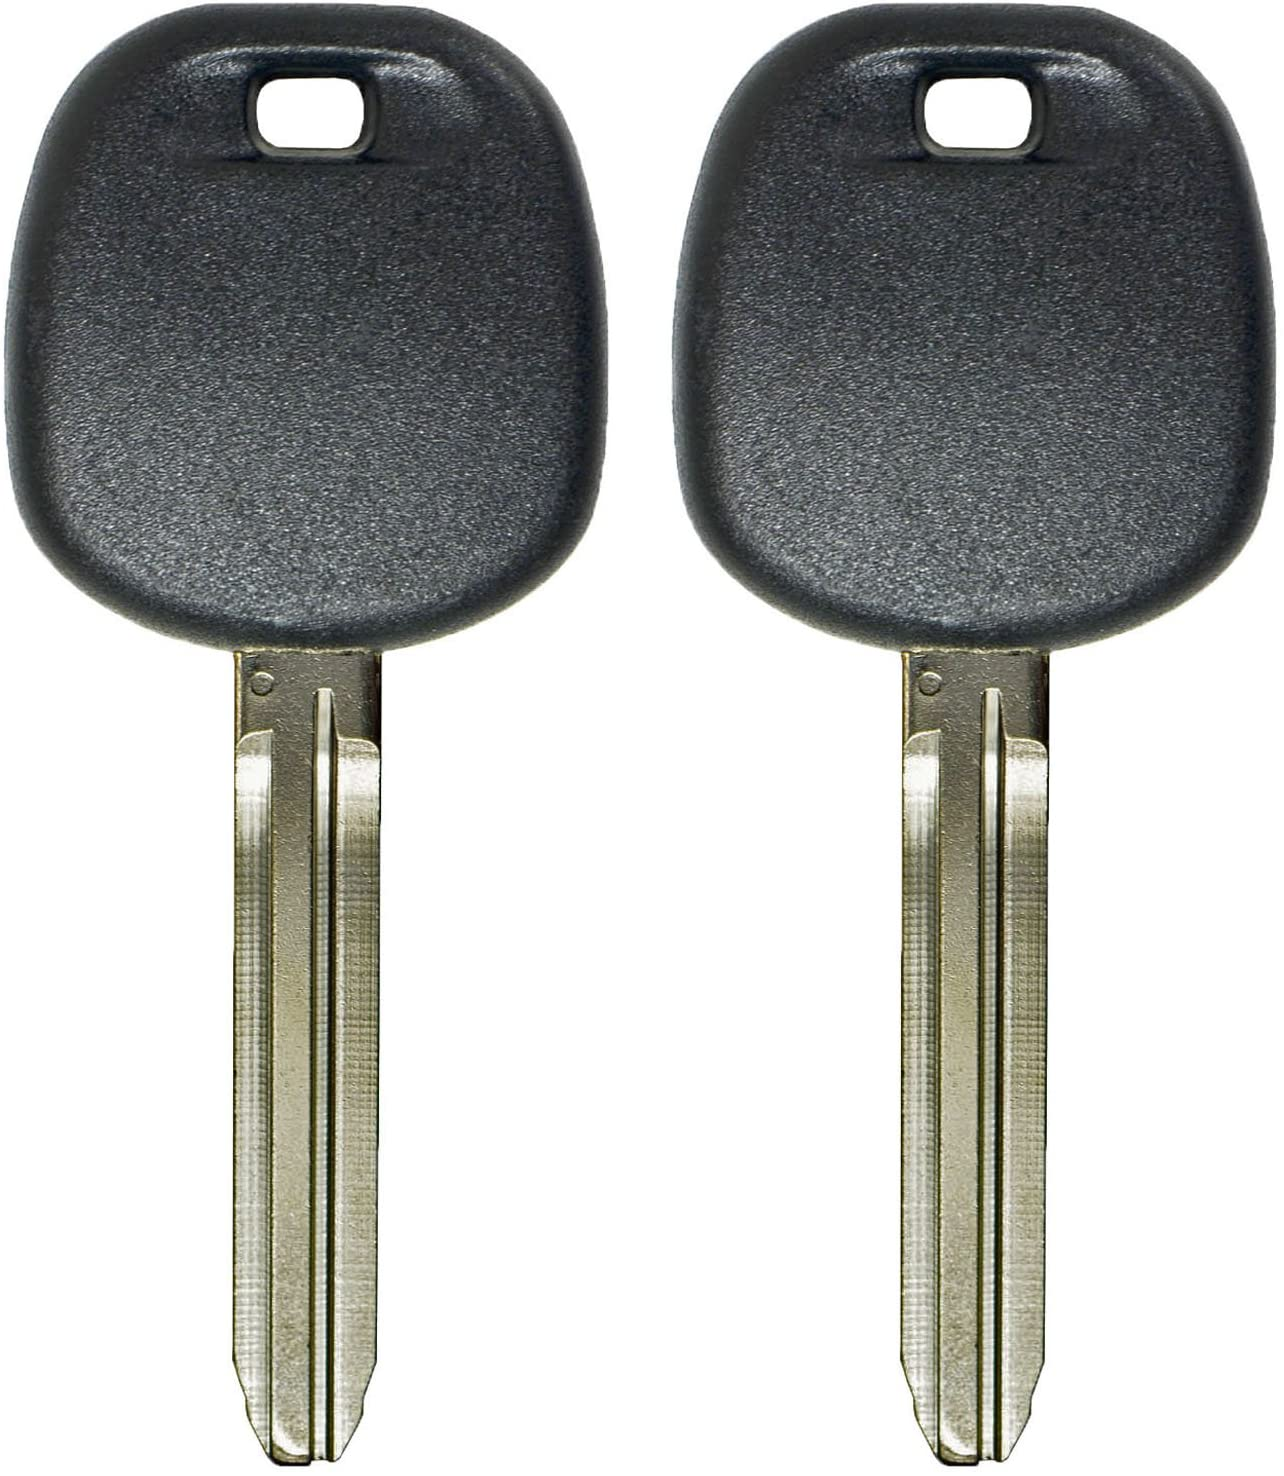 qualitykeylessplus Two Replacement Transponder Chip Keys TOY44DPT for Toyota Vehicles with Free KEYTAG